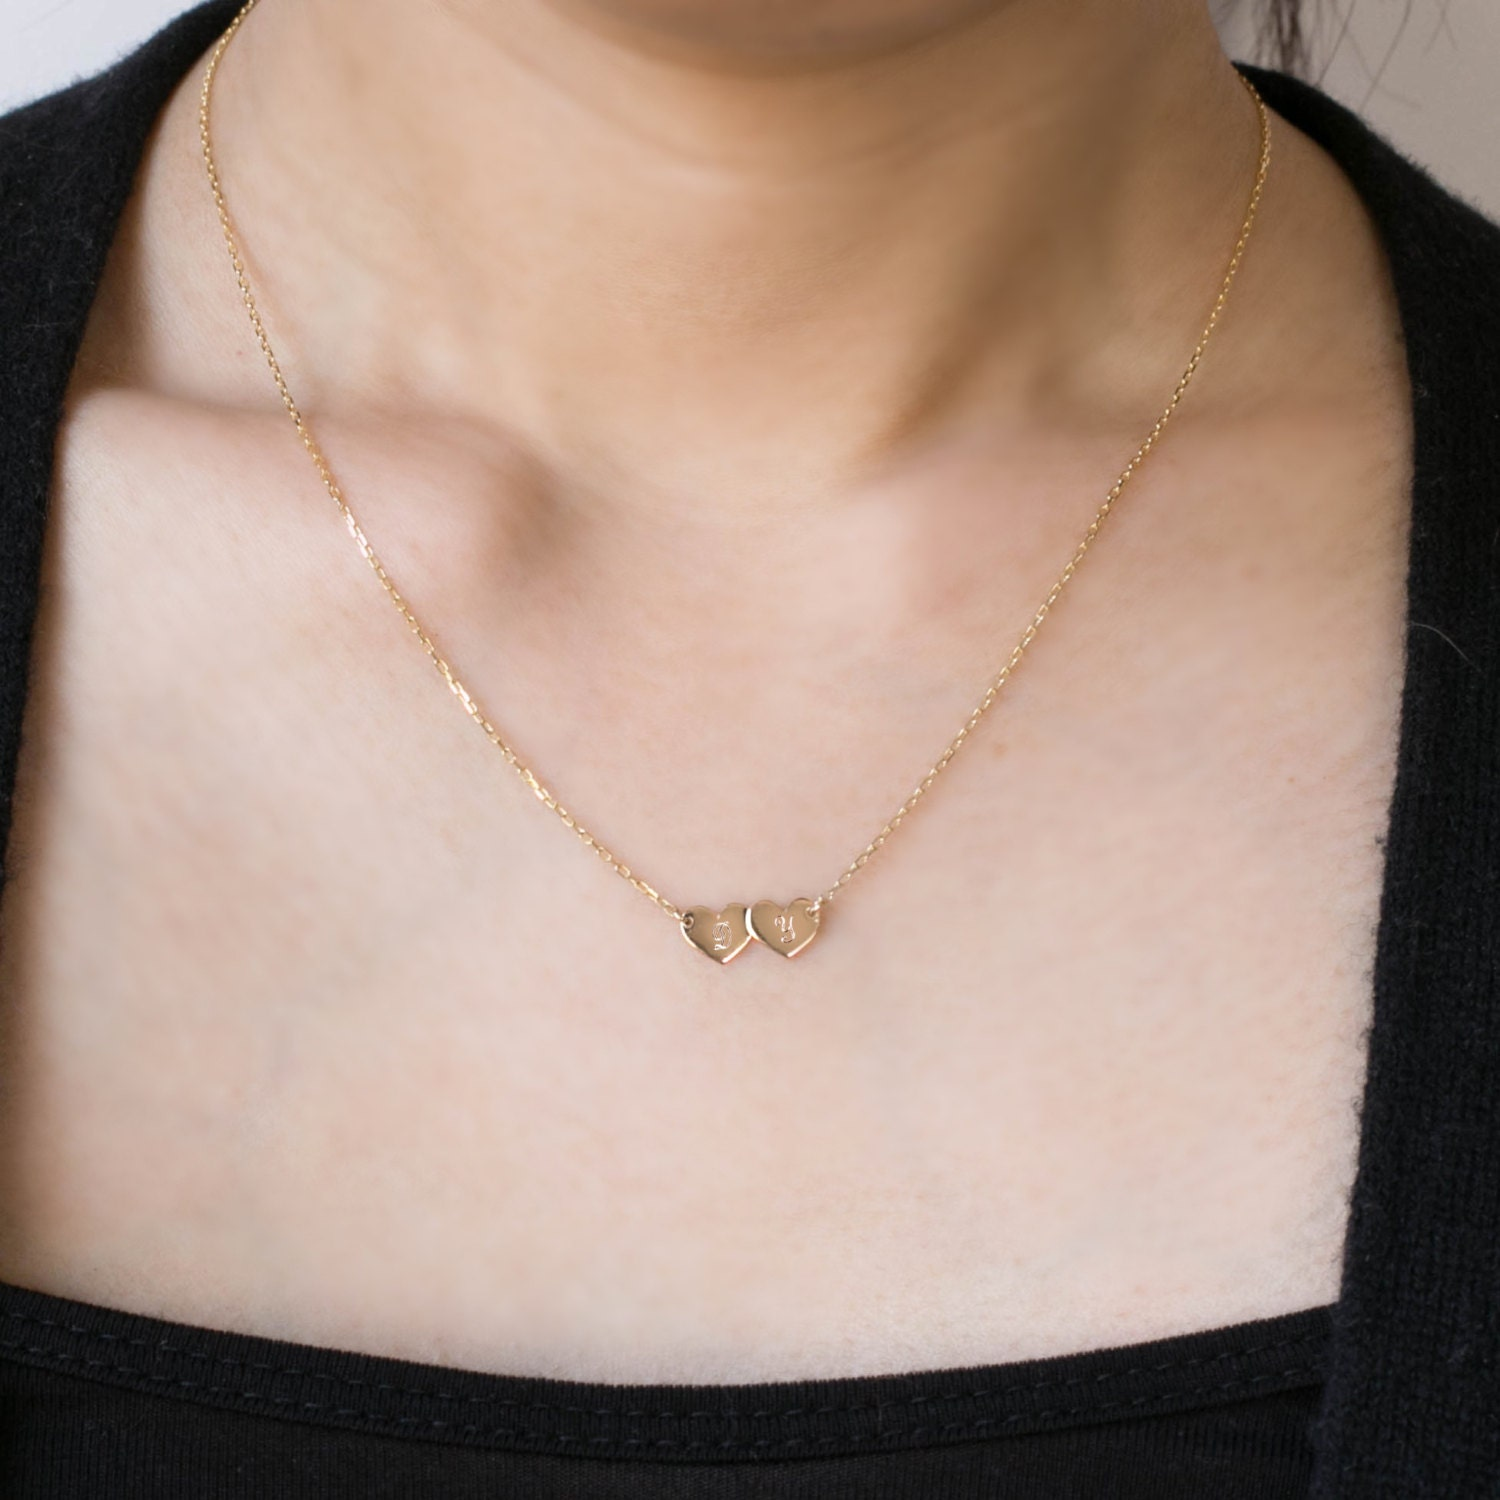 14k Gold Personalized jewelry two initial chain necklace